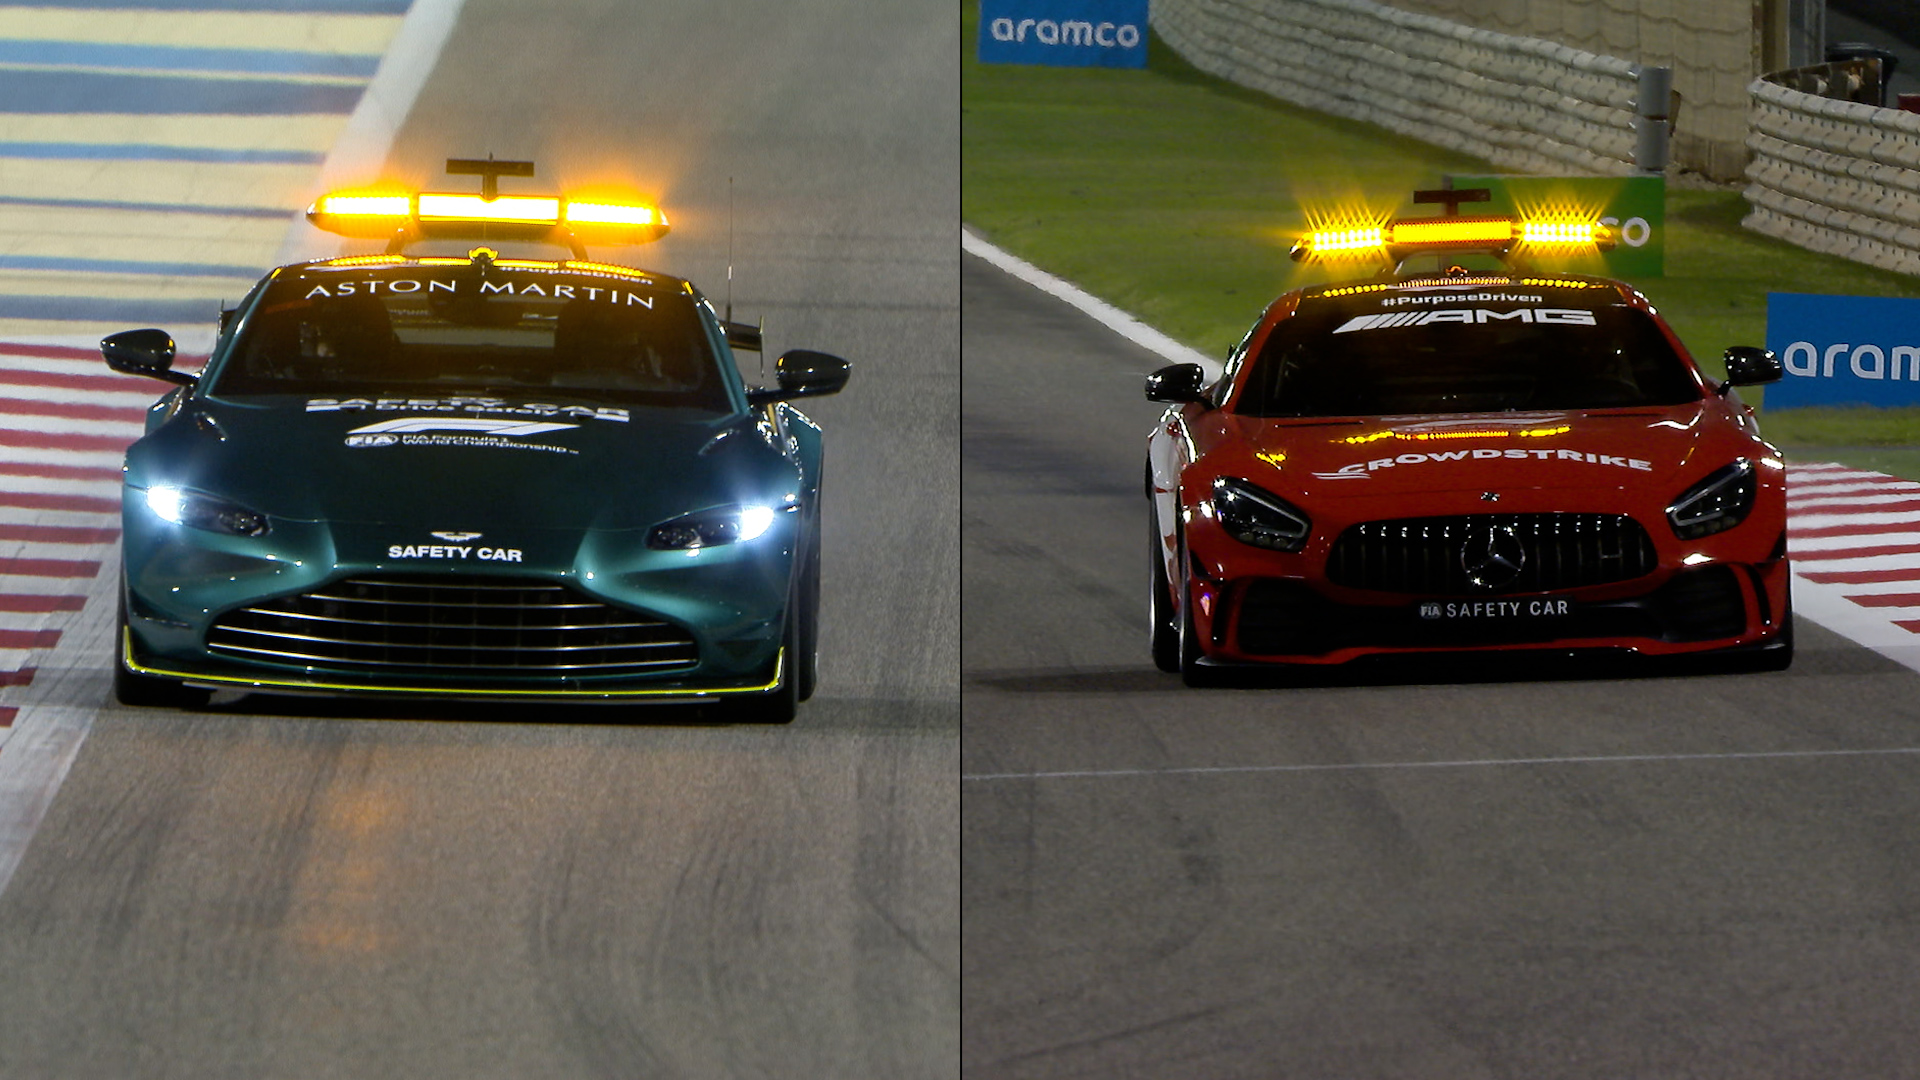 Watch New Look Red F1 Safety Car Takes To Bahrain Track Ahead Of Pre Season Testing Formula 1